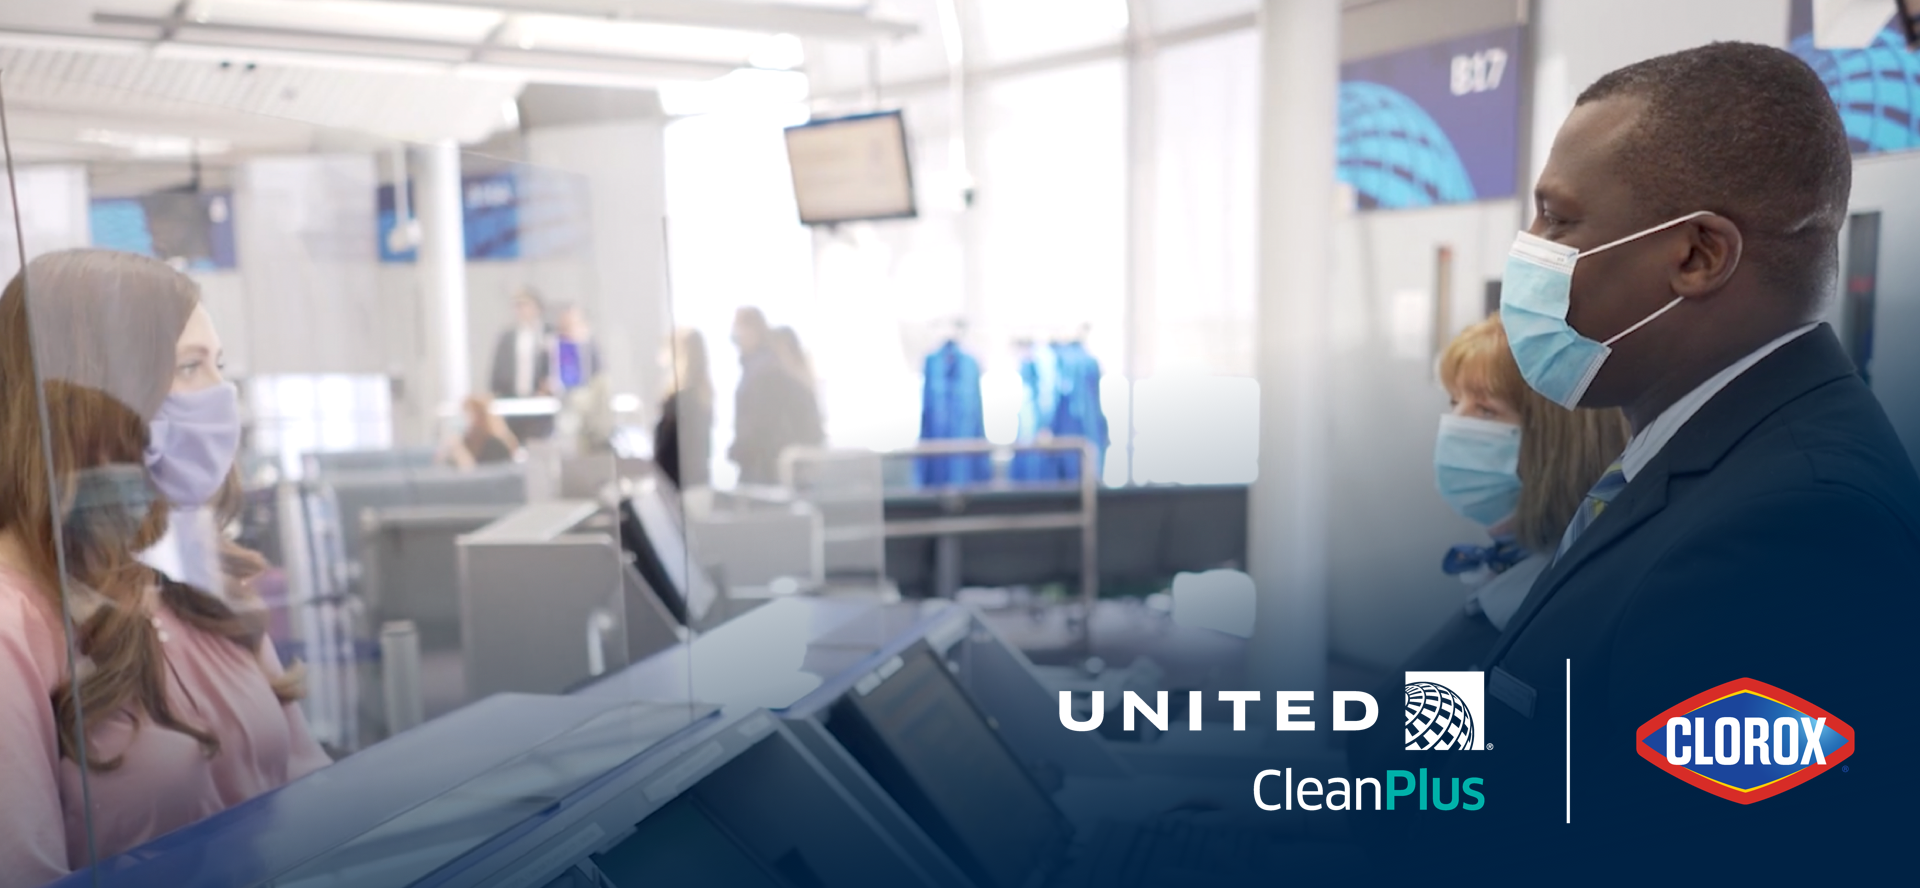 United employee and the customer wearing masks | United CleanPlus logo | Clorox logo